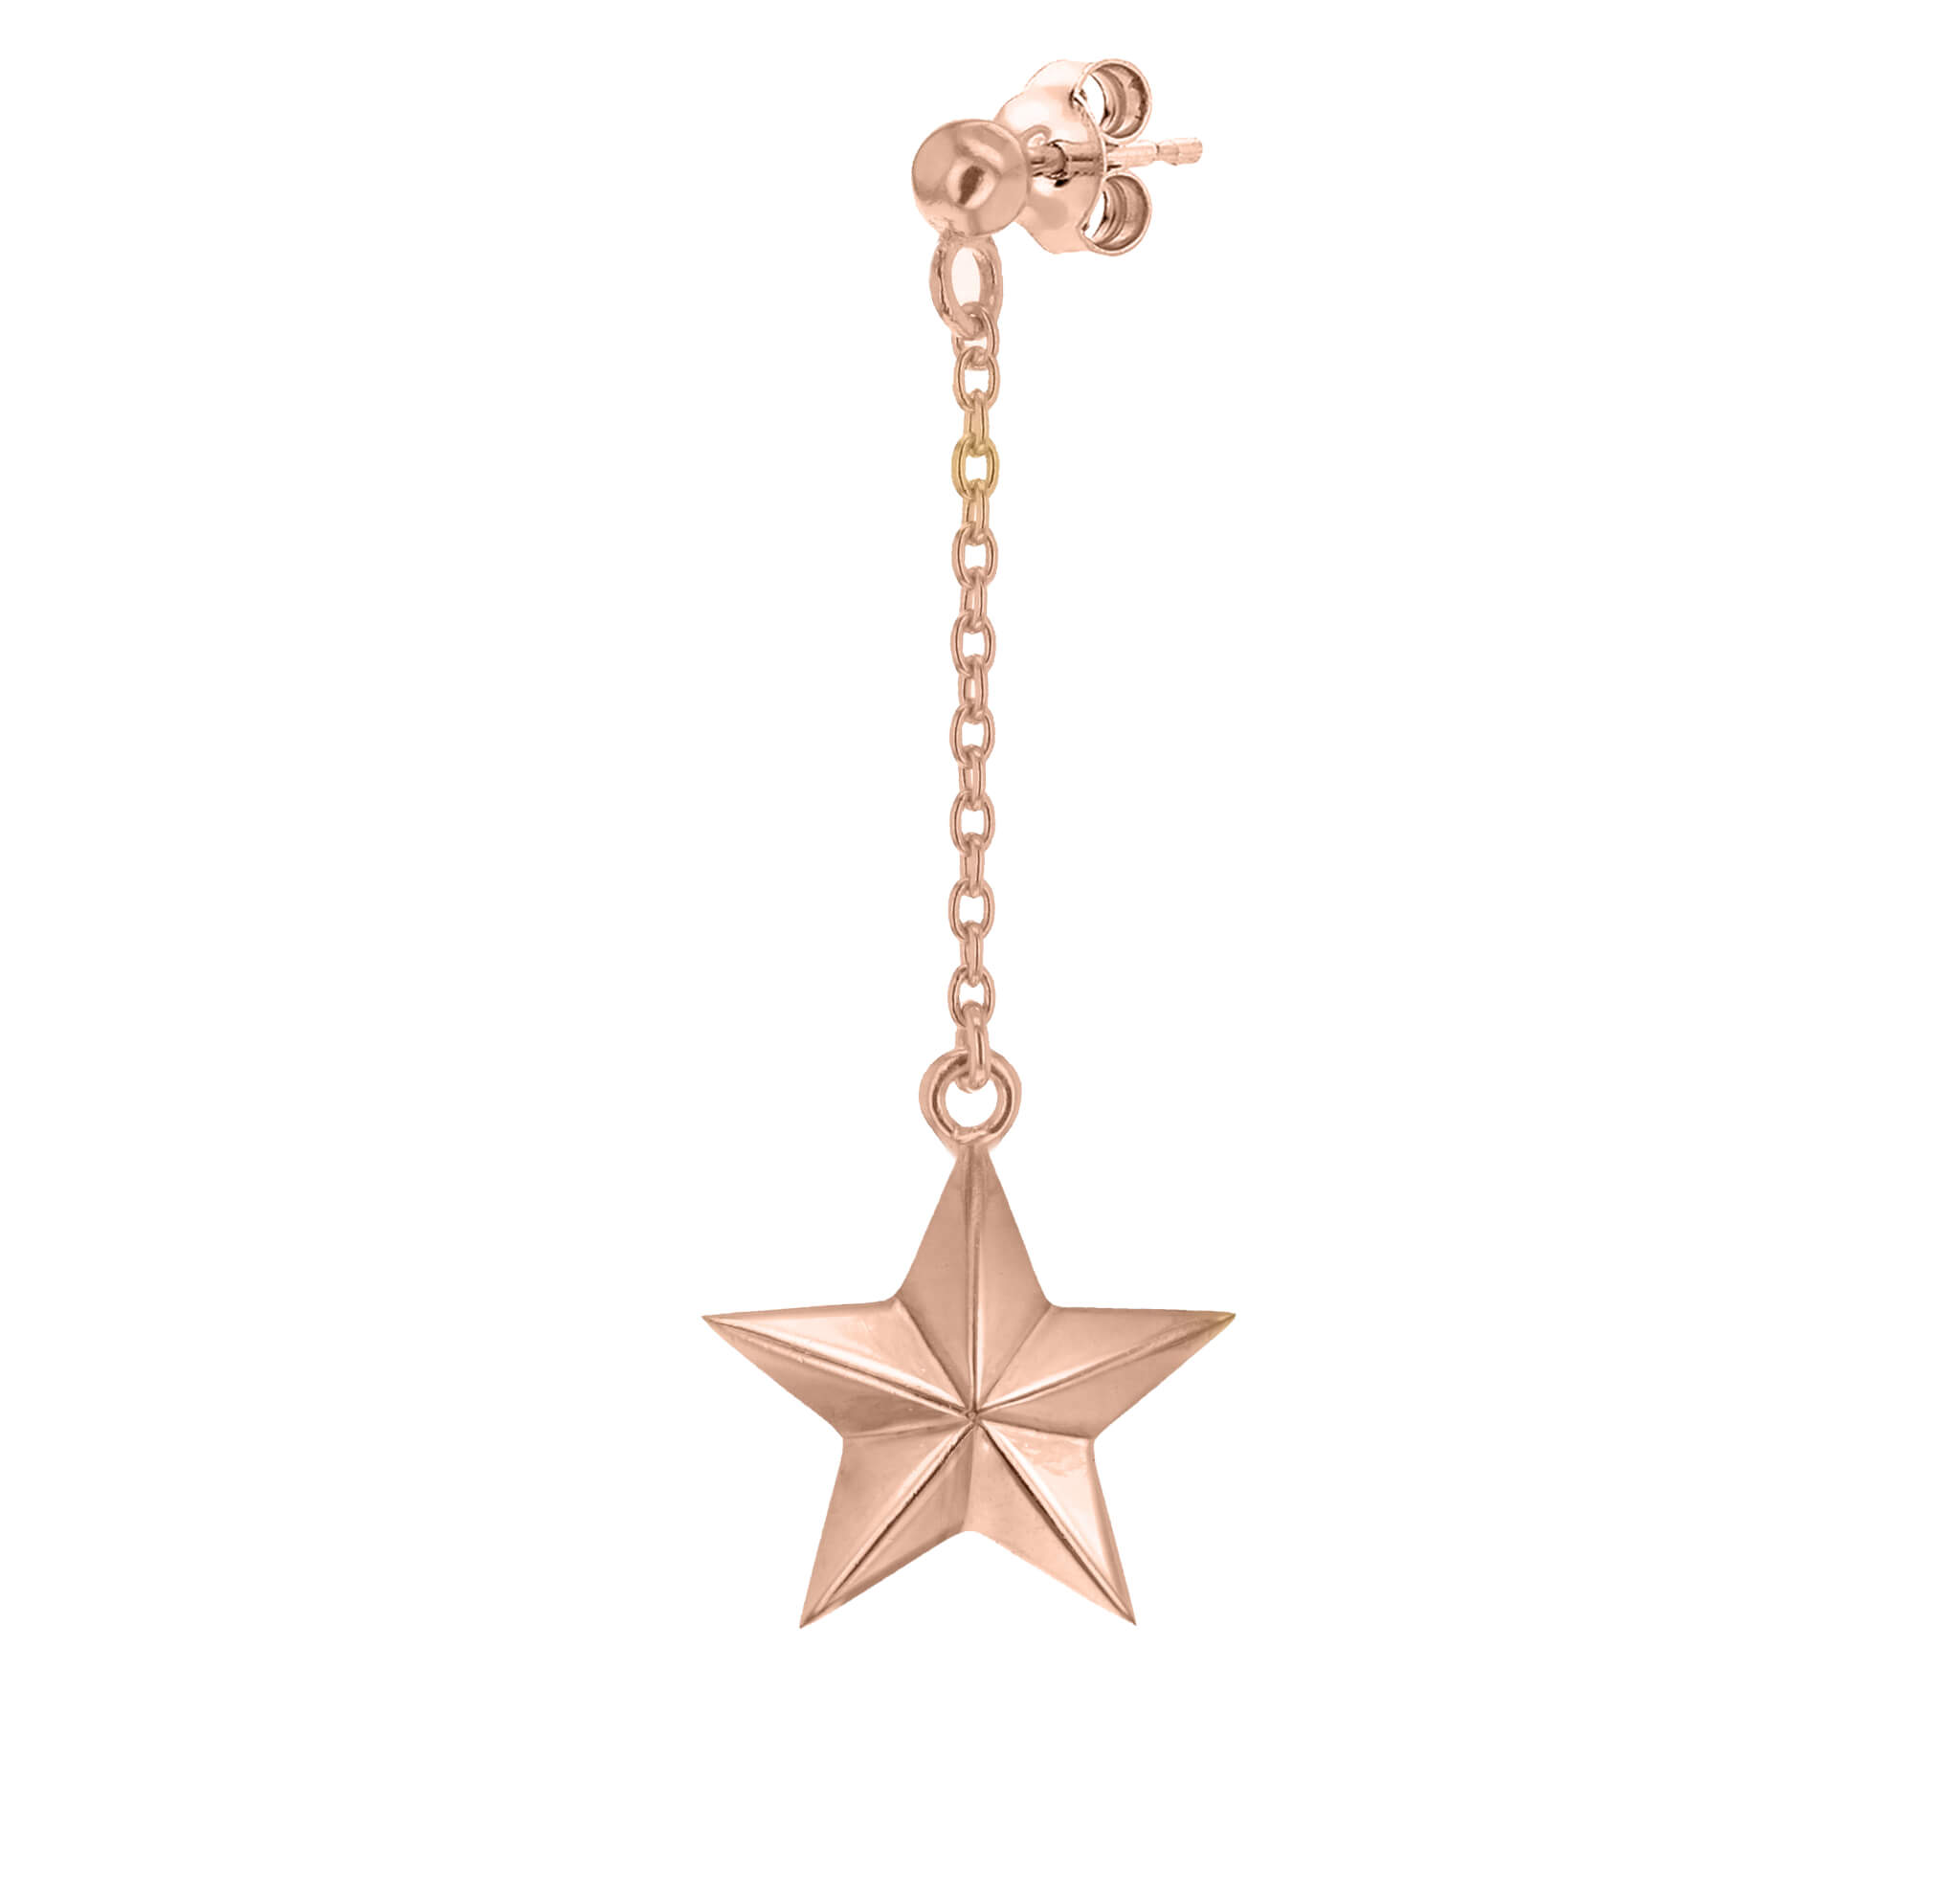 star earrings rose.jpg1